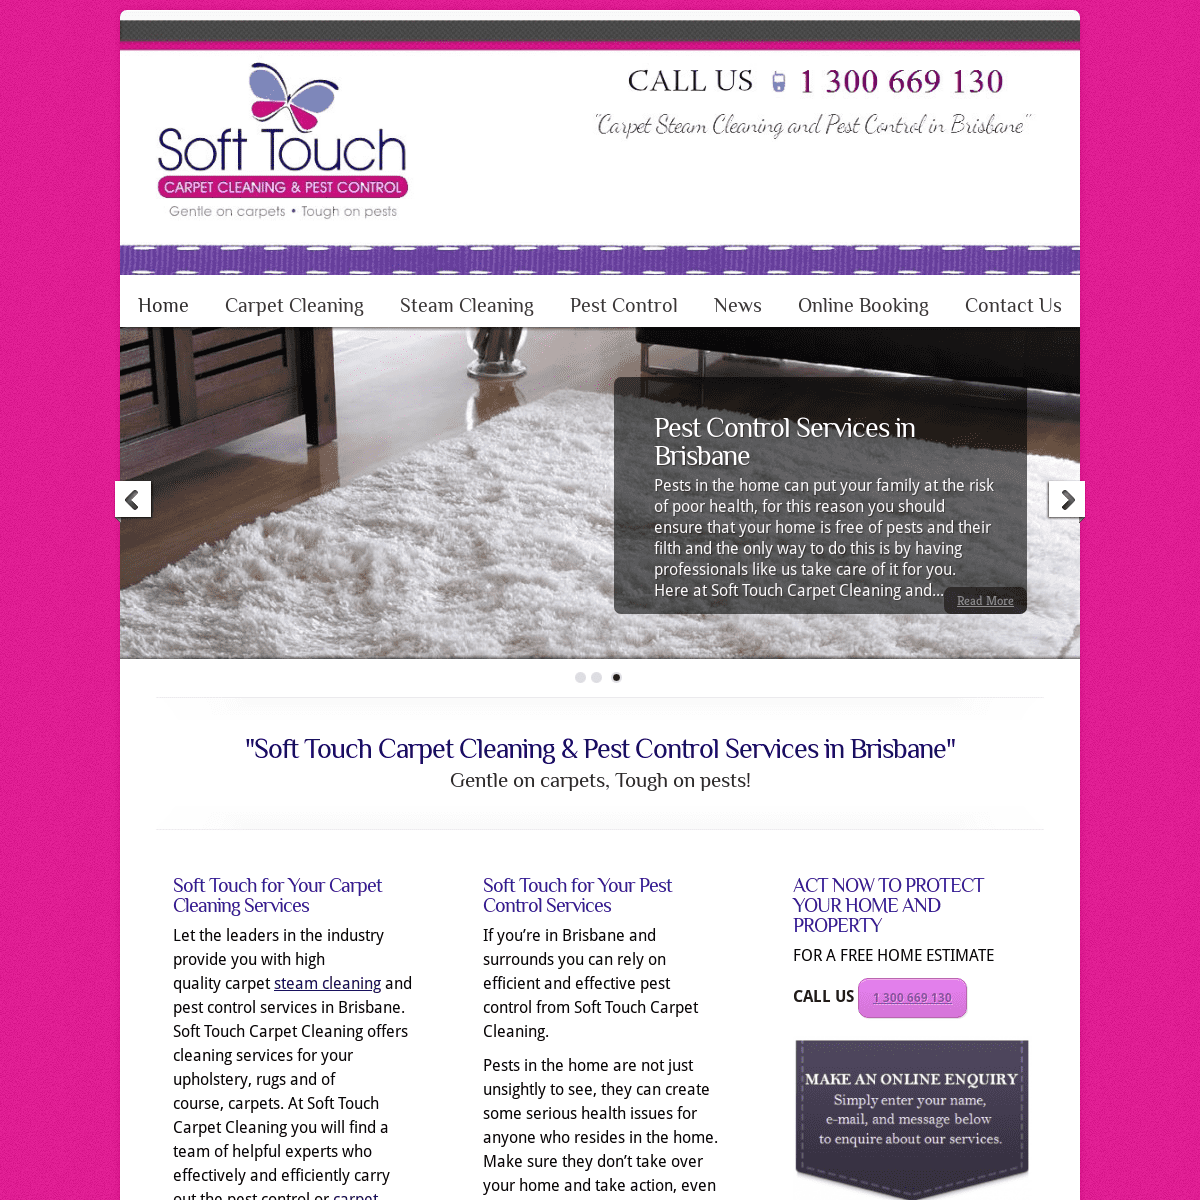 Soft Touch Carpet Cleaning